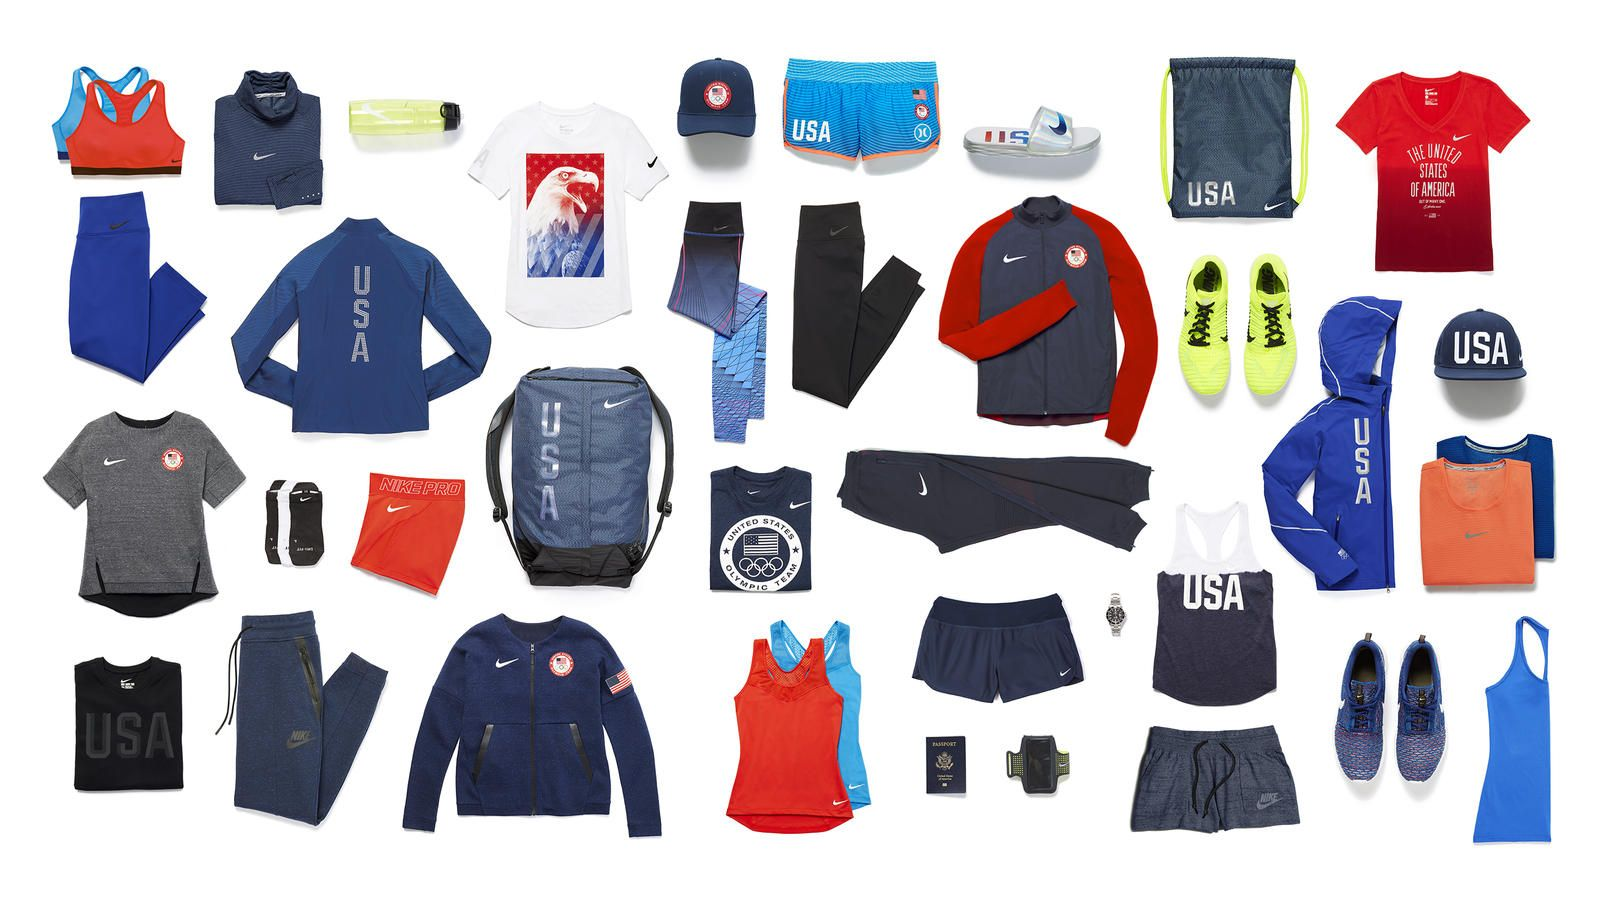 Rio Olympics Swag Bag - Top Items From Summer 2016 Olympics Swag Bag d9b0bf2672afb